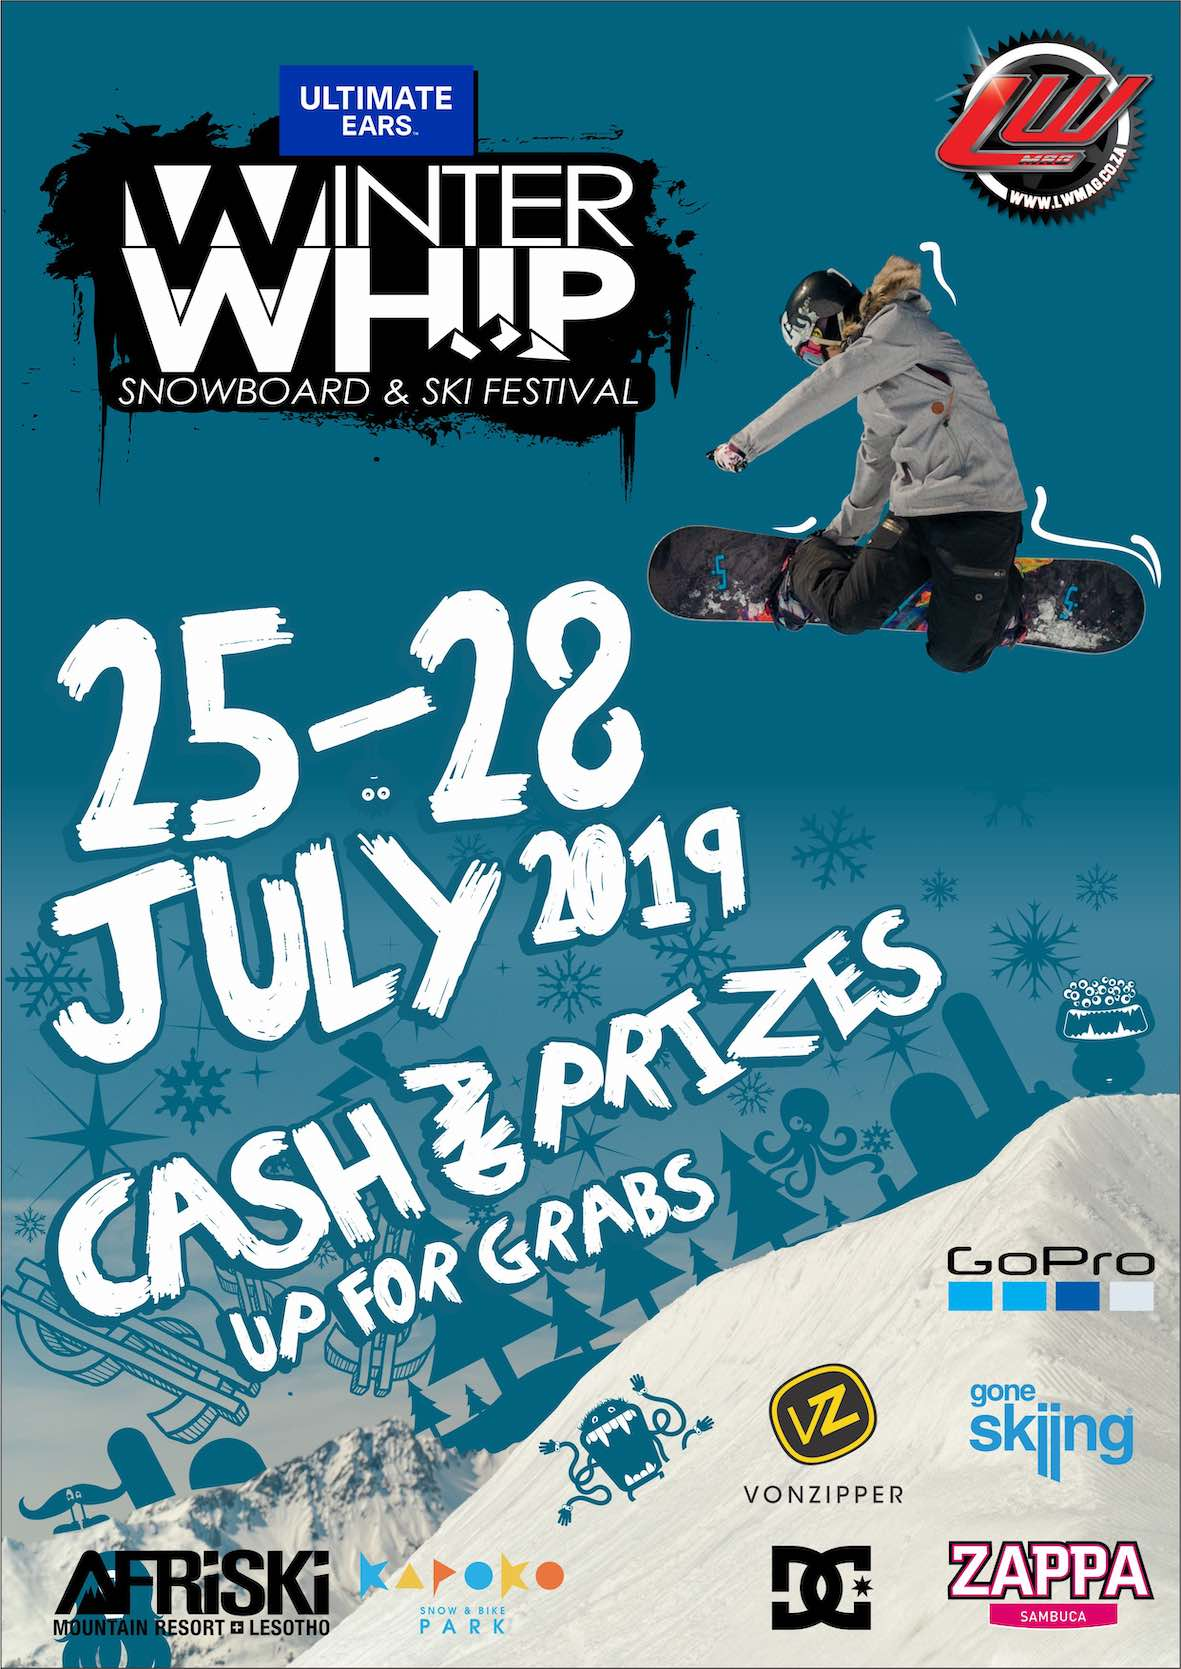 Details for the 2019 Ultimate Ears Winter Whip Snowboard and Ski Festival